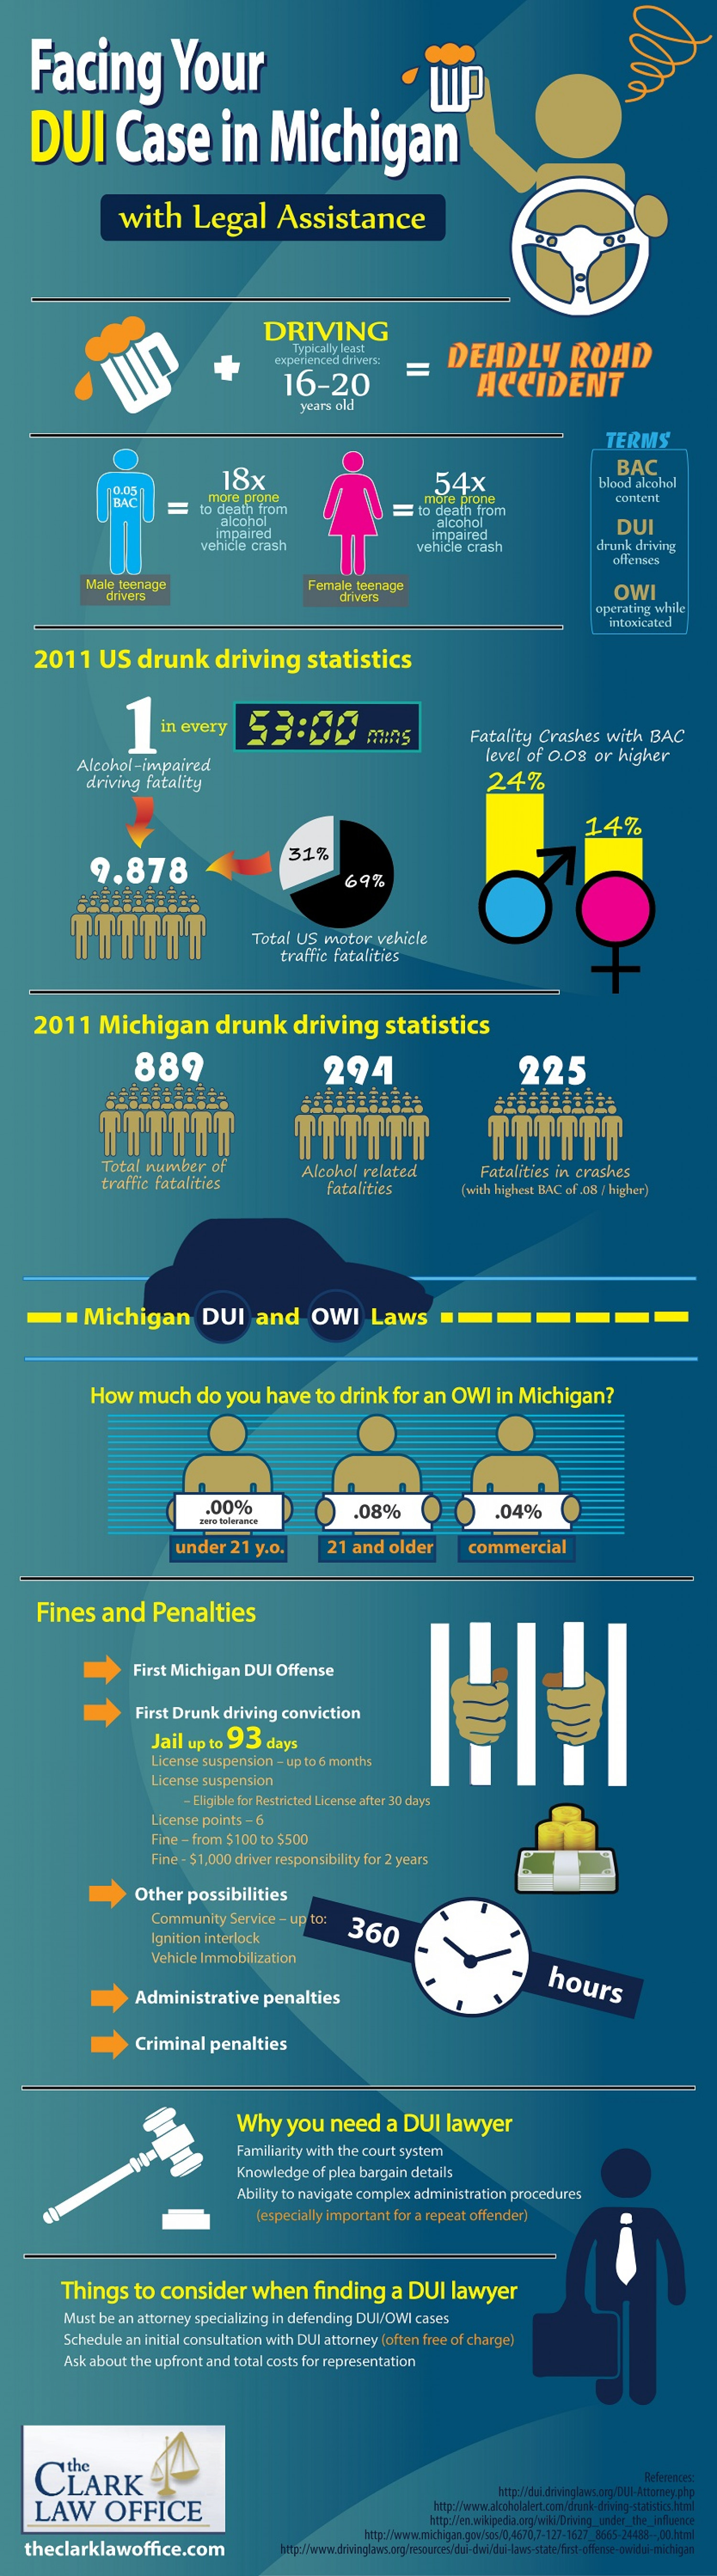 Facing Your DUI Case in Michigan Infographic